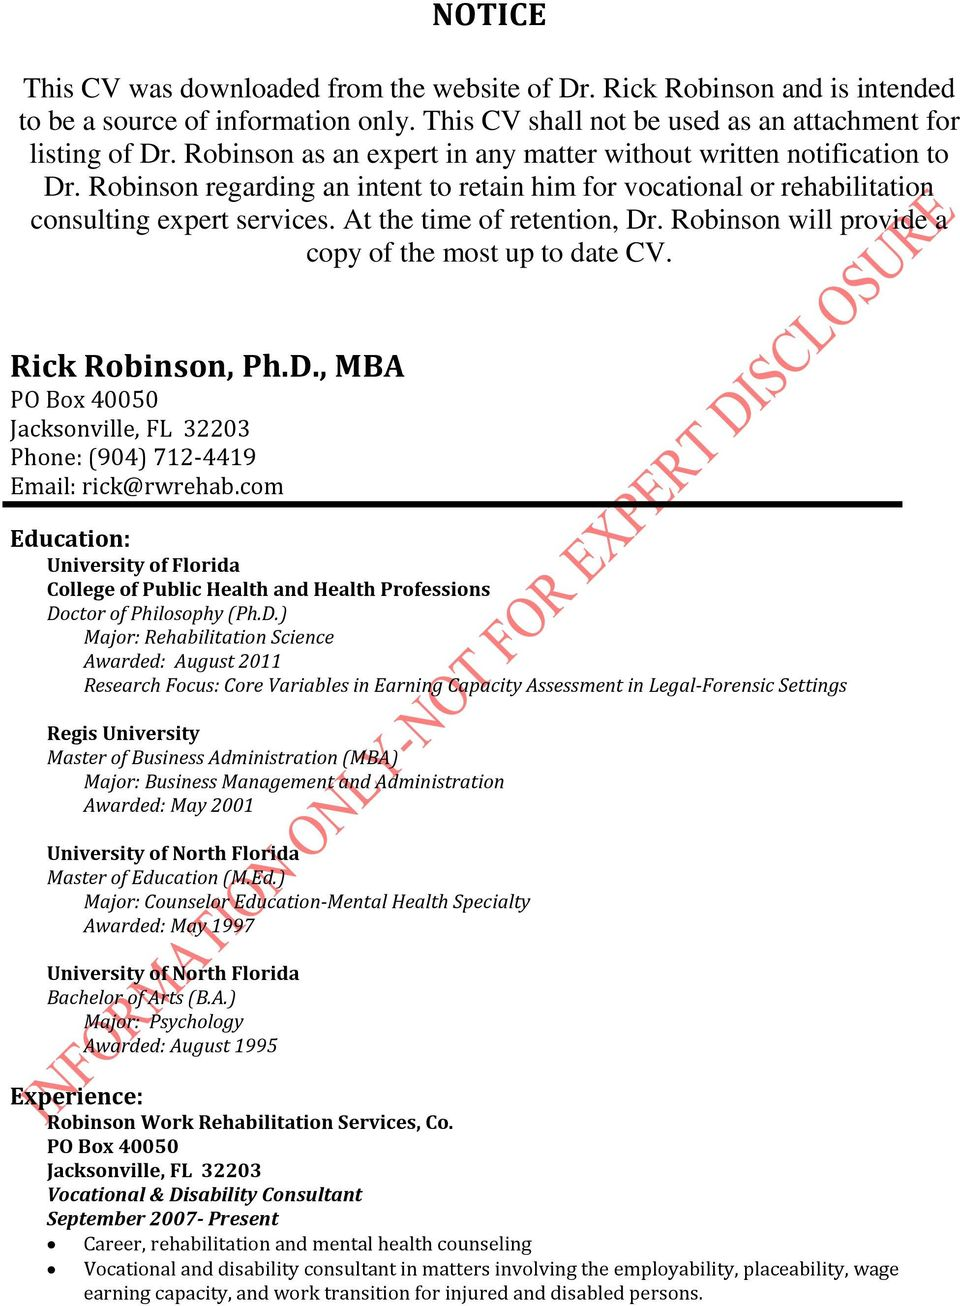 At the time of retention, Dr. Robinson will provide a copy of the most up to date CV., Ph.D., MBA PO Box 40050 Jacksonville, FL 32203 Phone: (904) 712-4419 Email: rick@rwrehab.